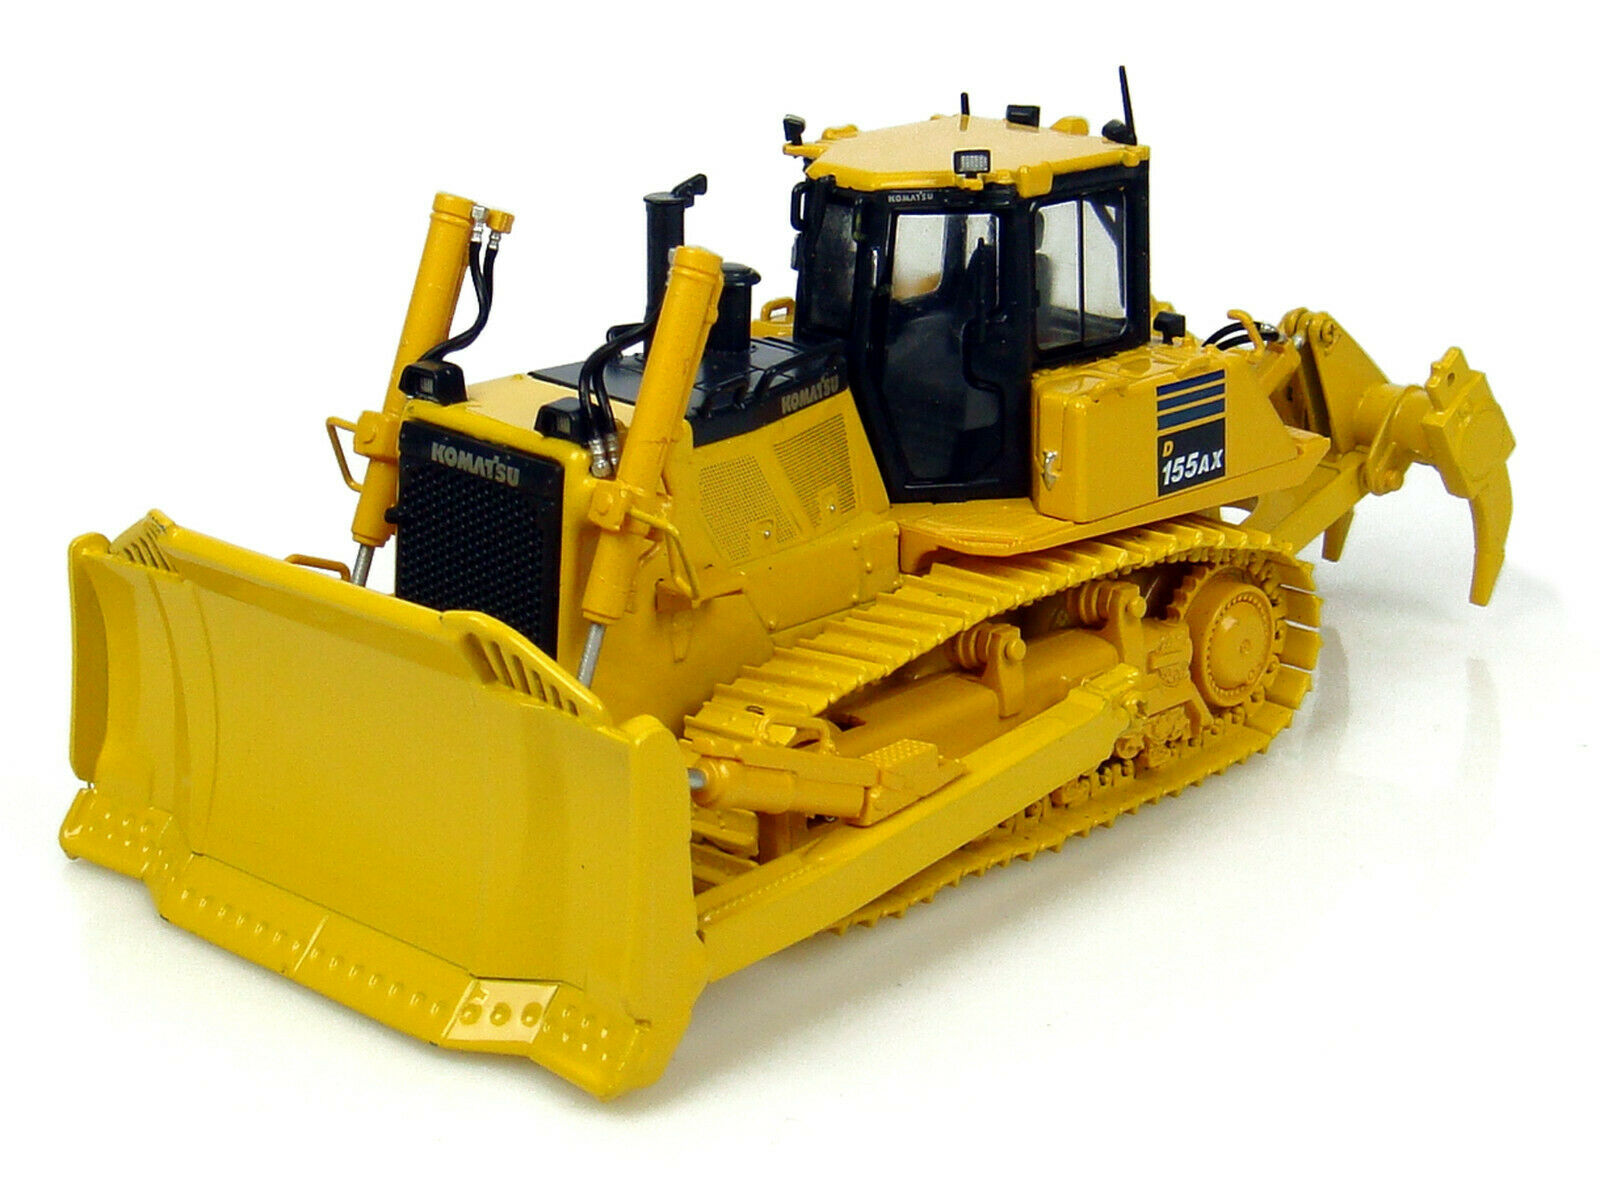 KOMATSU  D 155 AX-7 DOZER W RIPPER 1 50 DIECAST MODEL BY UNIVERSAL HOBBIES UH8010  profitez de 50% de réduction